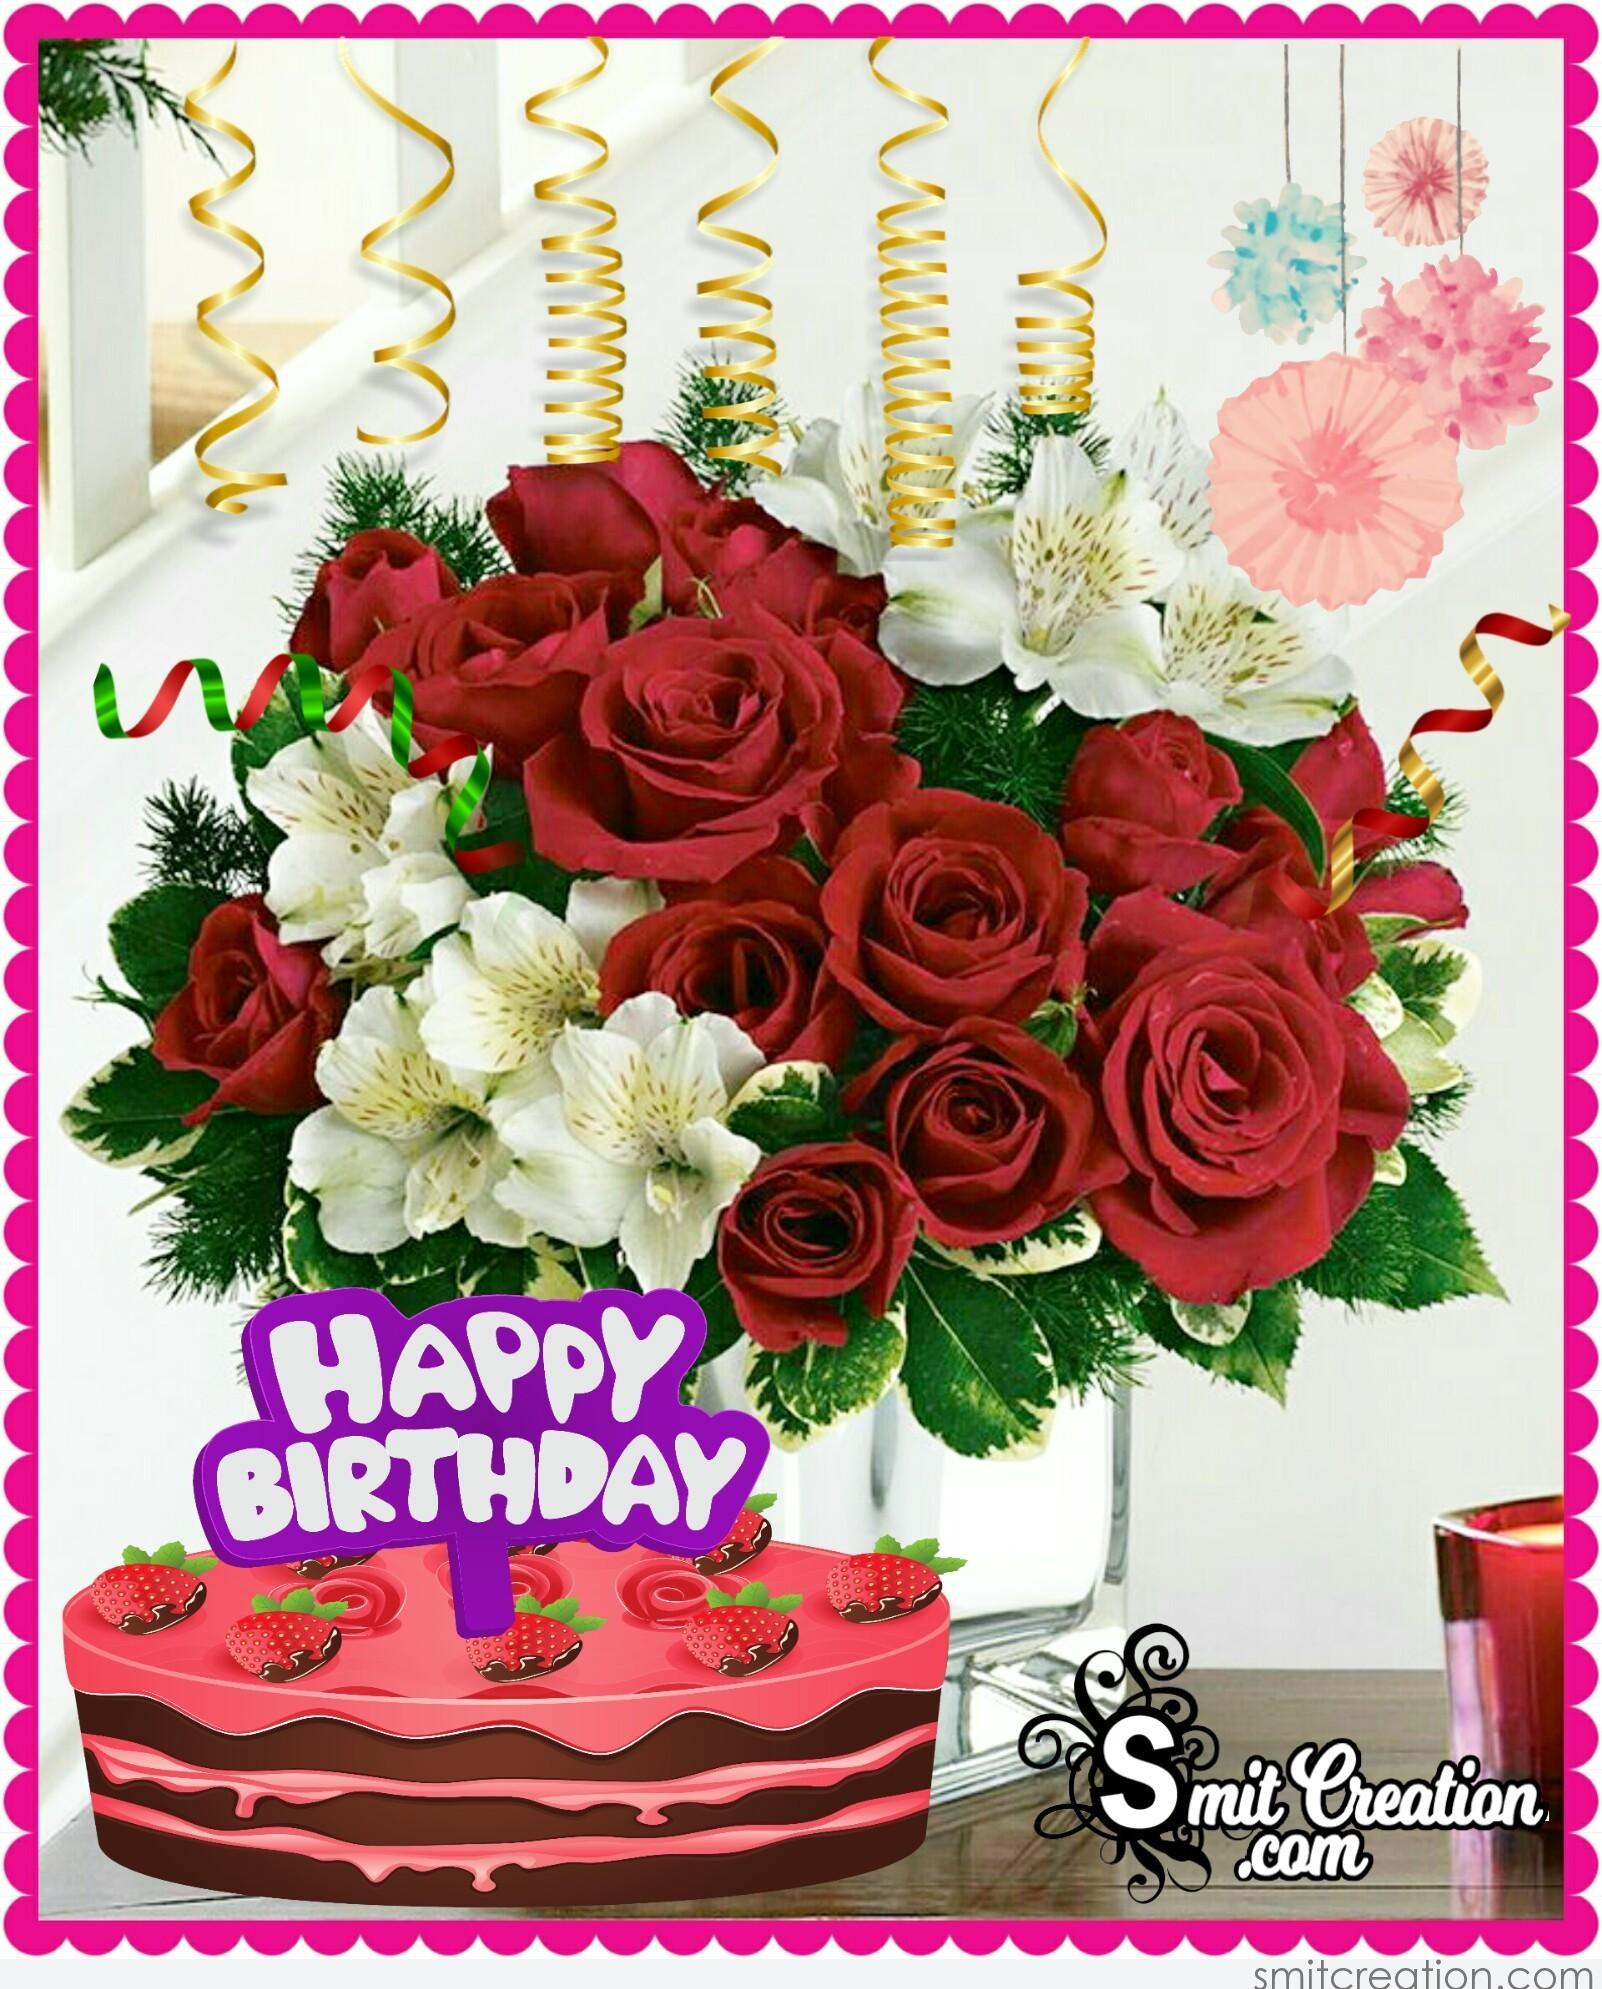 Happy Birthday Flower Bouquet with Cake - SmitCreation.com